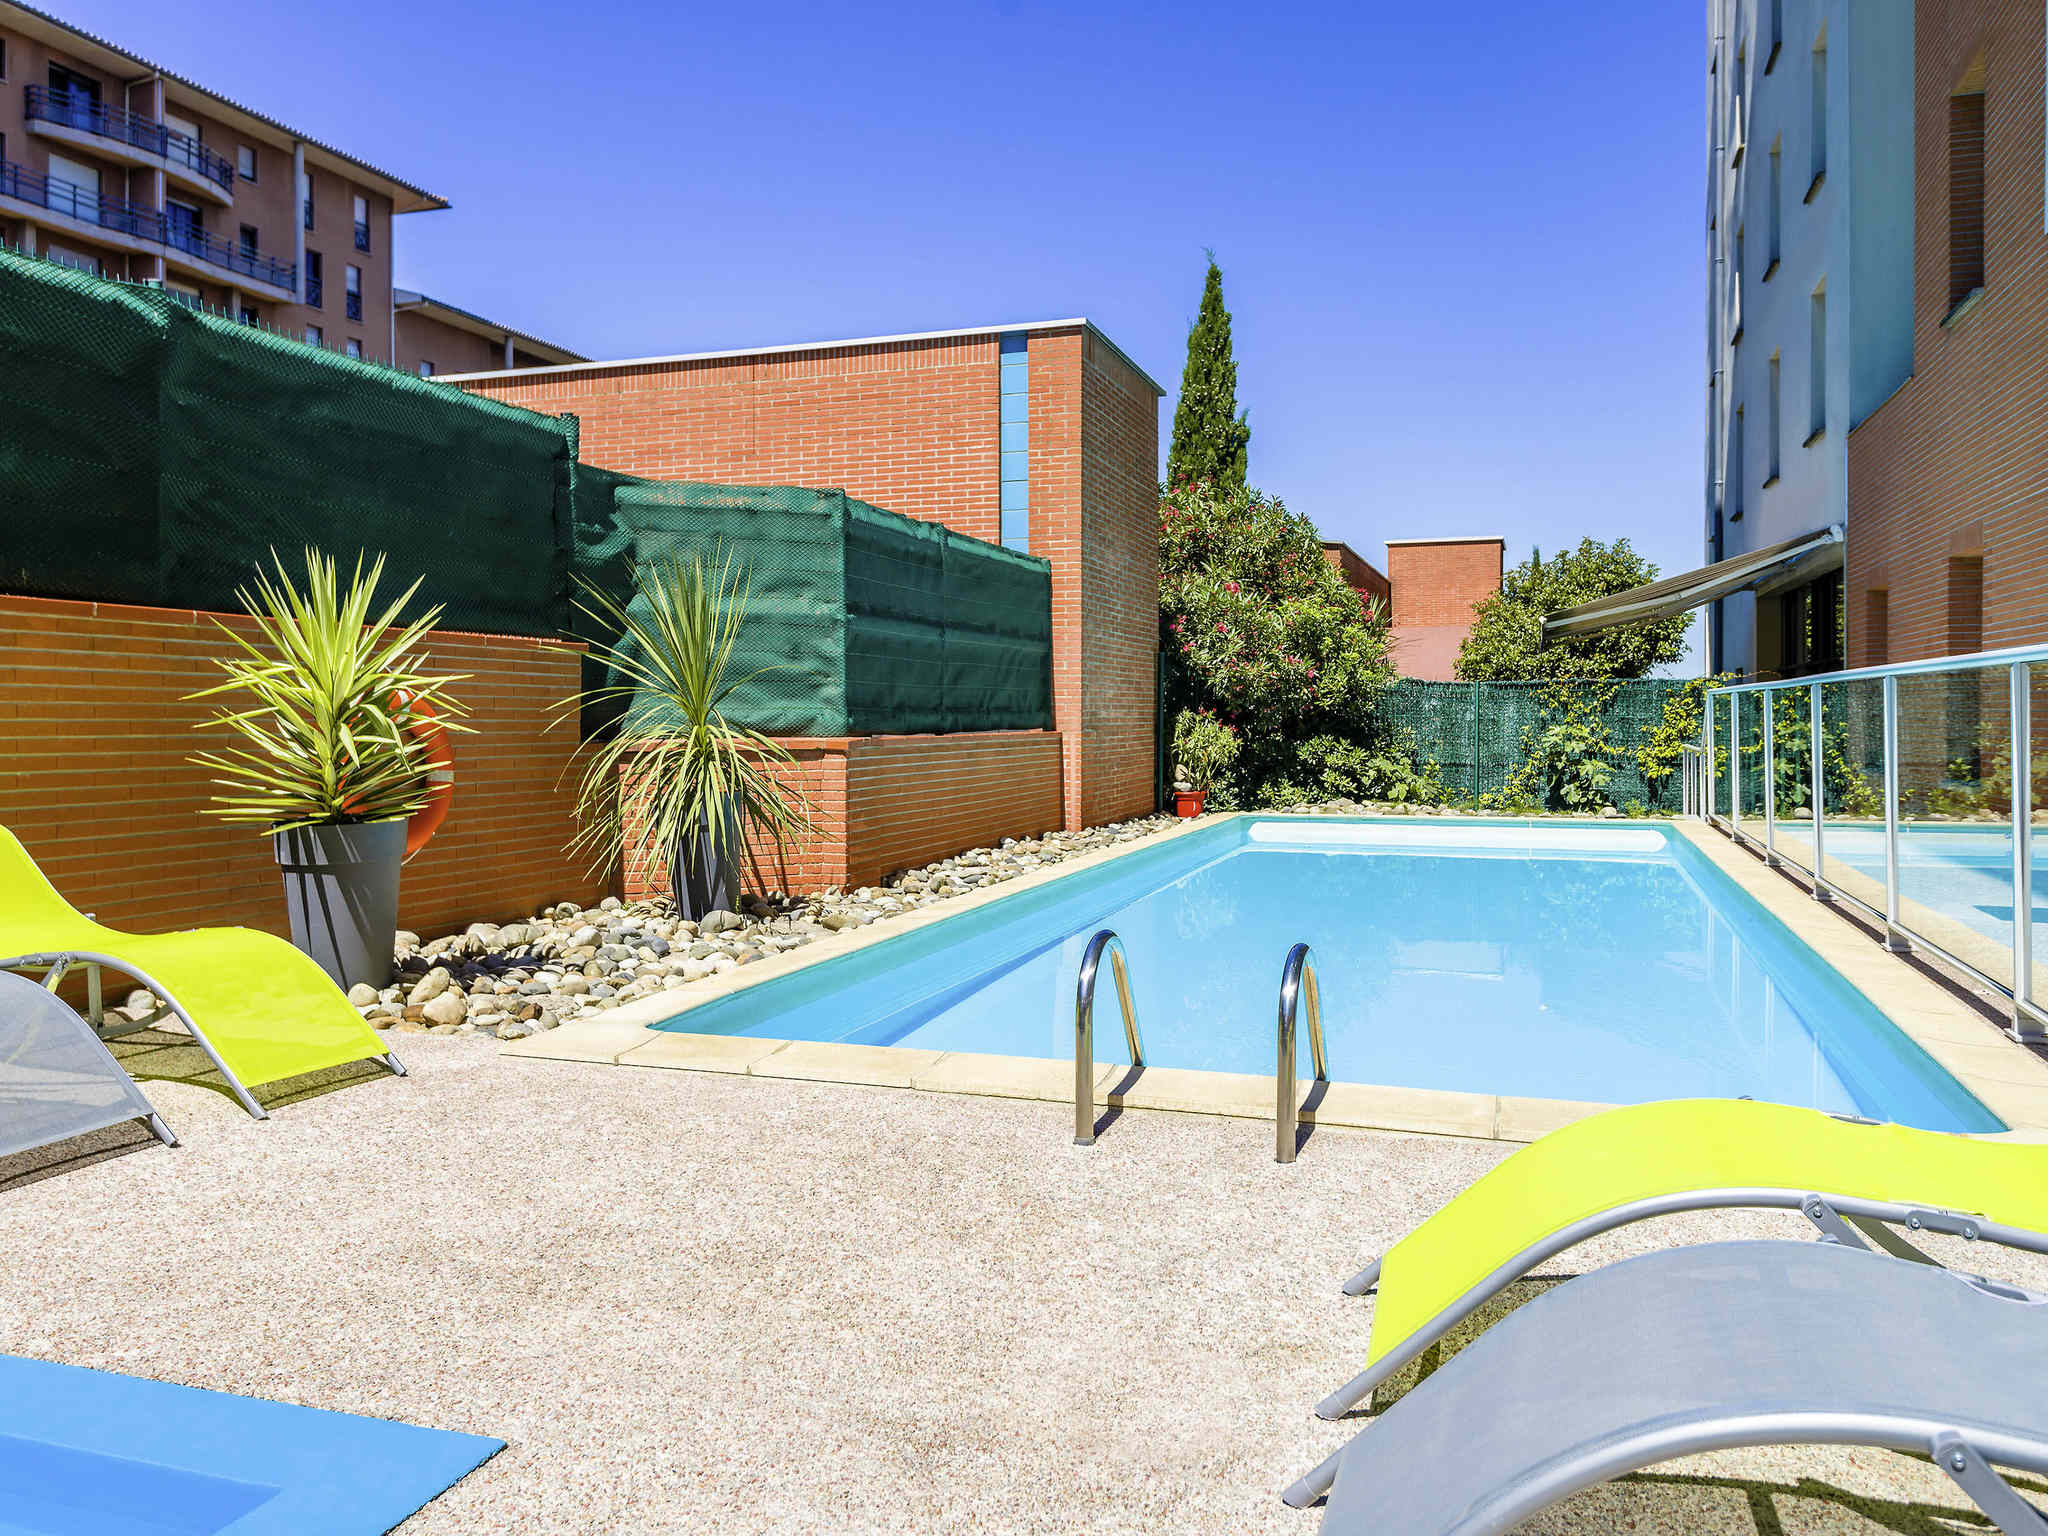 Hotell – Aparthotel Adagio access Toulouse Jolimont